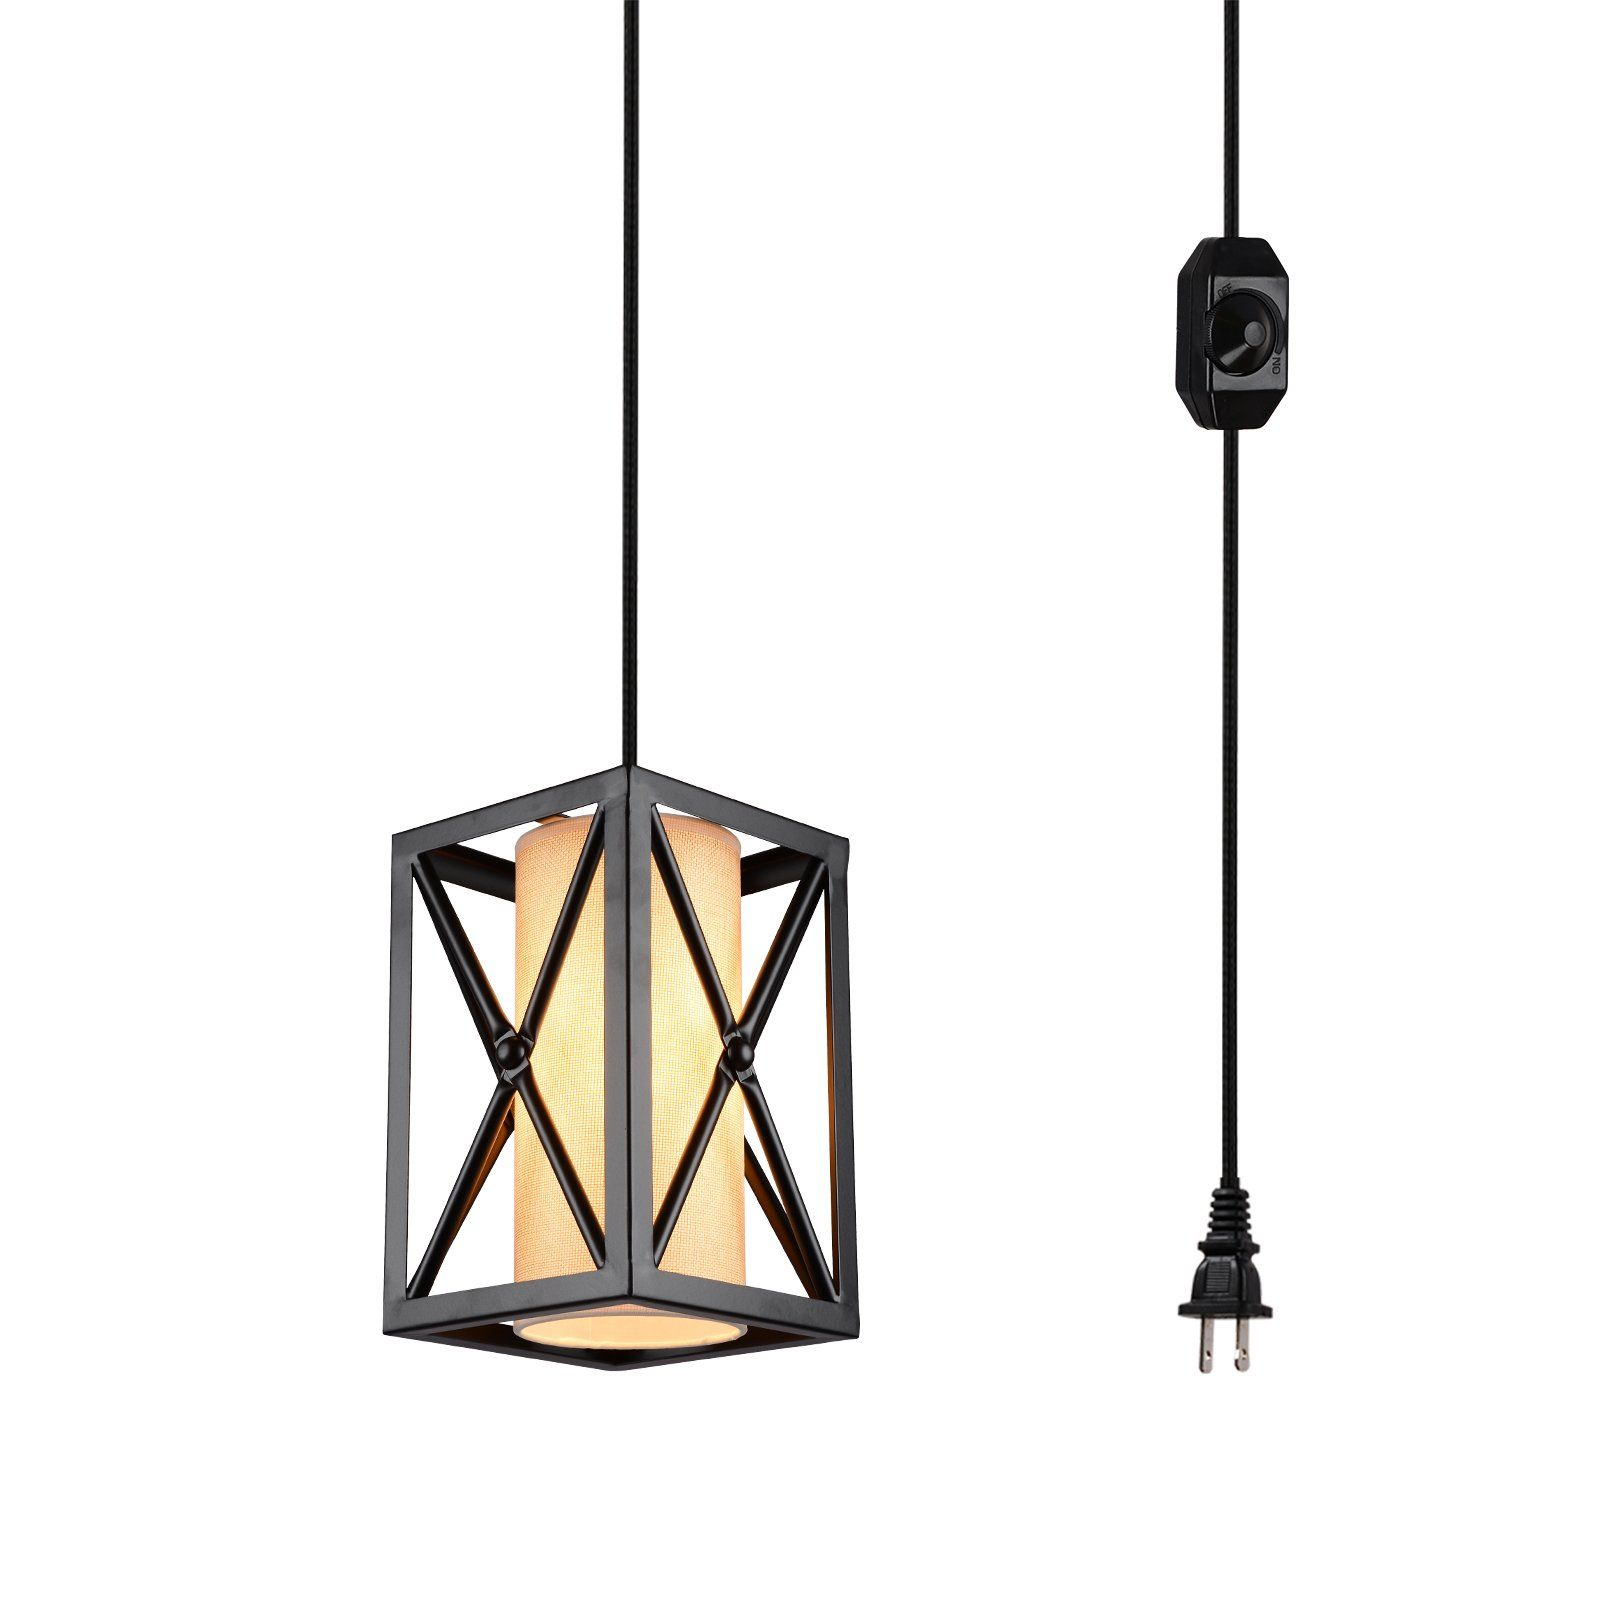 HMVPL Plug In Industrial Pendant Light With Linen Lamp Shade 15 Ft Hanging Cord